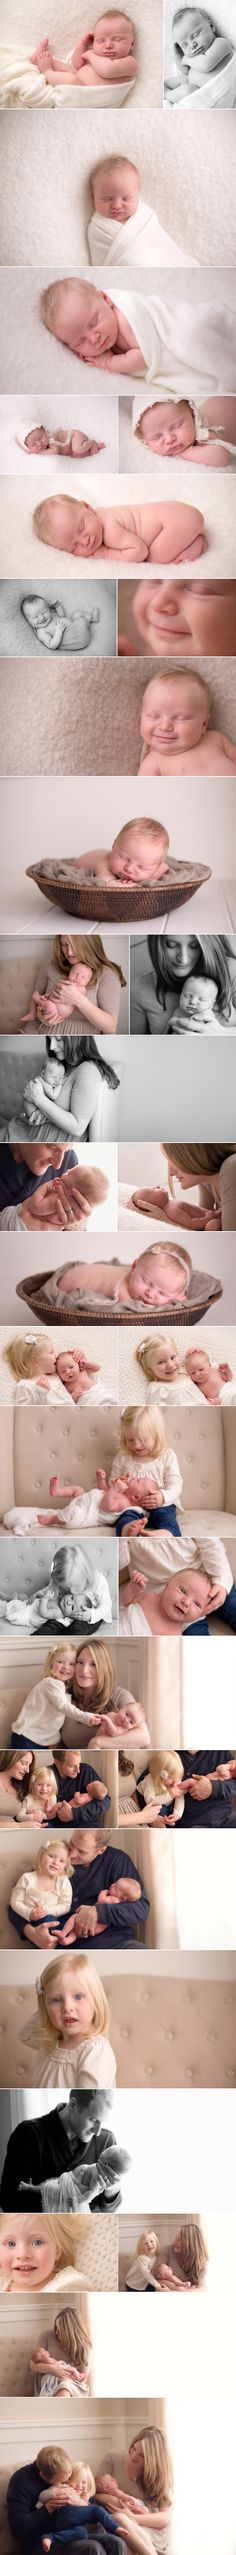 I LOVE these pictures of the family & newborn baby <3